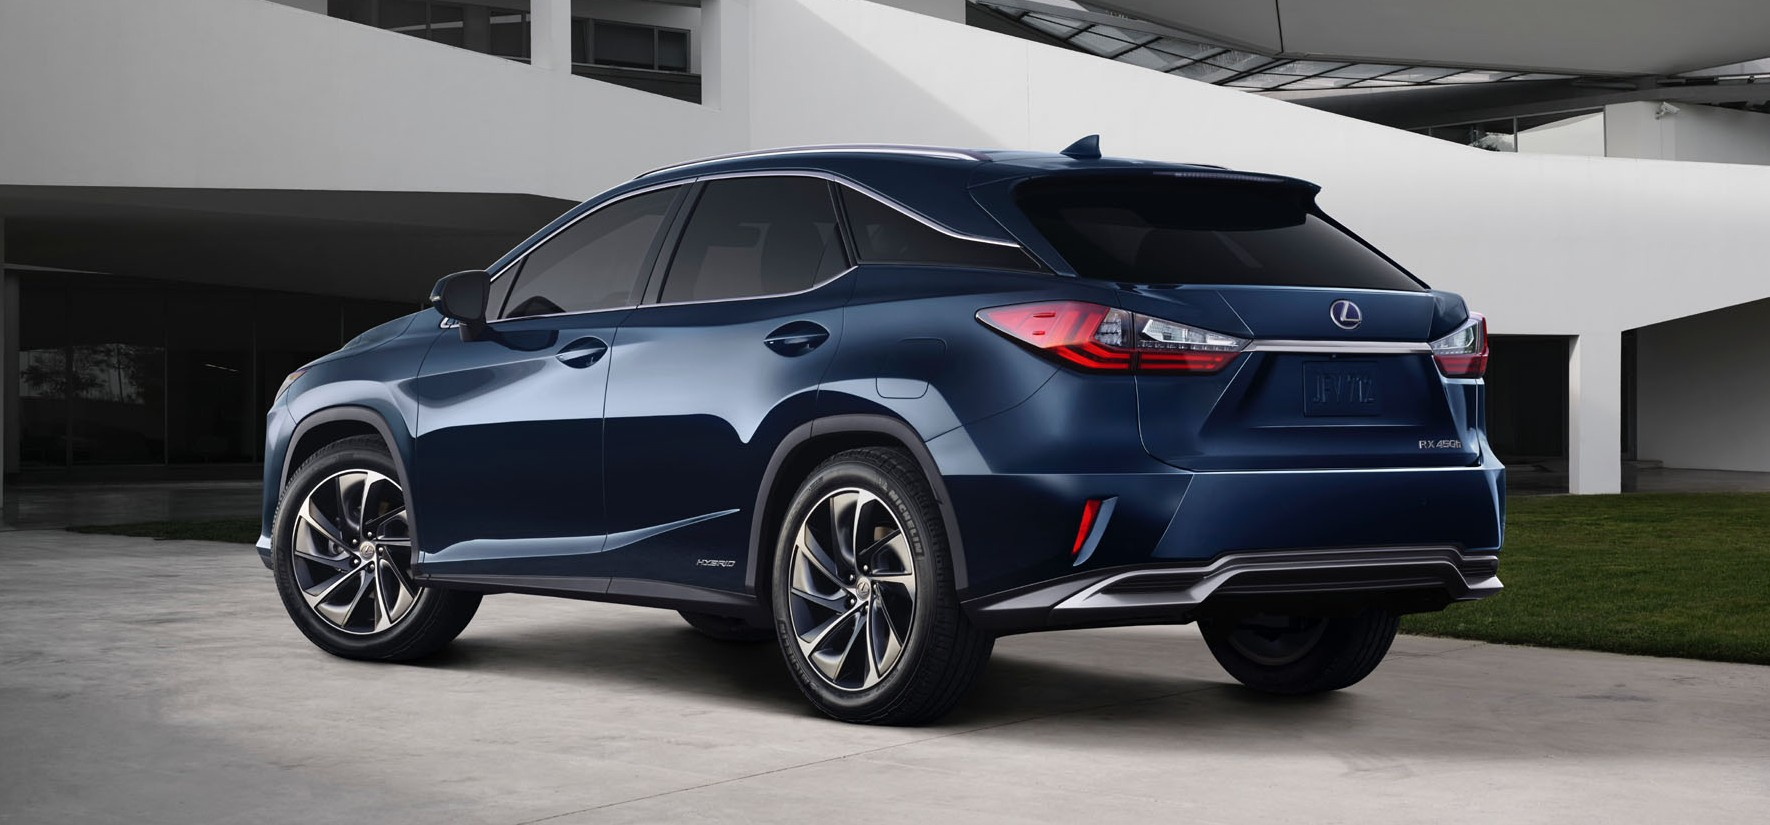 Lexus Rx 450h >> Lexus RX 450h and RX 350 F Sport debut at NYIAS Image 323746